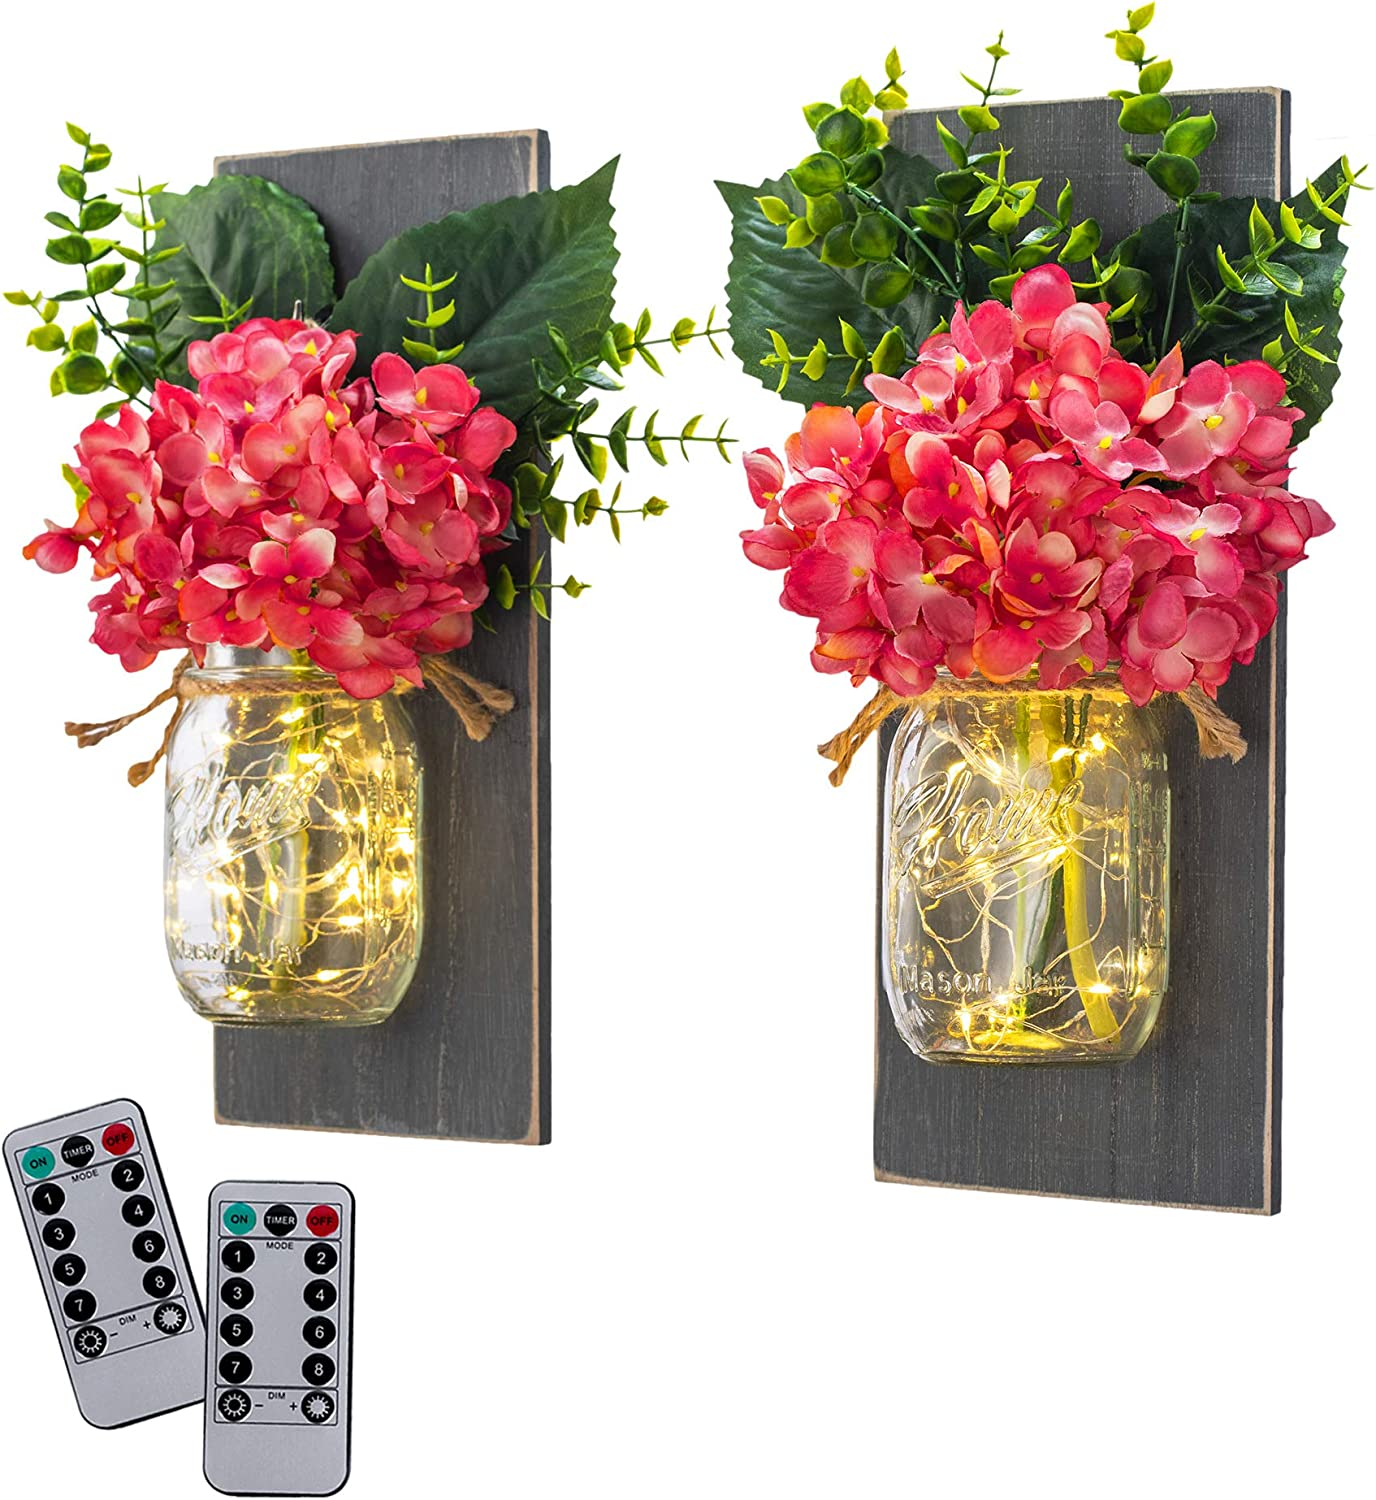 RS SUNLIGHT Mason Jar Wall Sconce with String LED Lights (Set of 2) - Farmhouse Chic Wall Decor- Shabby Chic Style - Two Remote Controls-Pink Hydrangea Flower